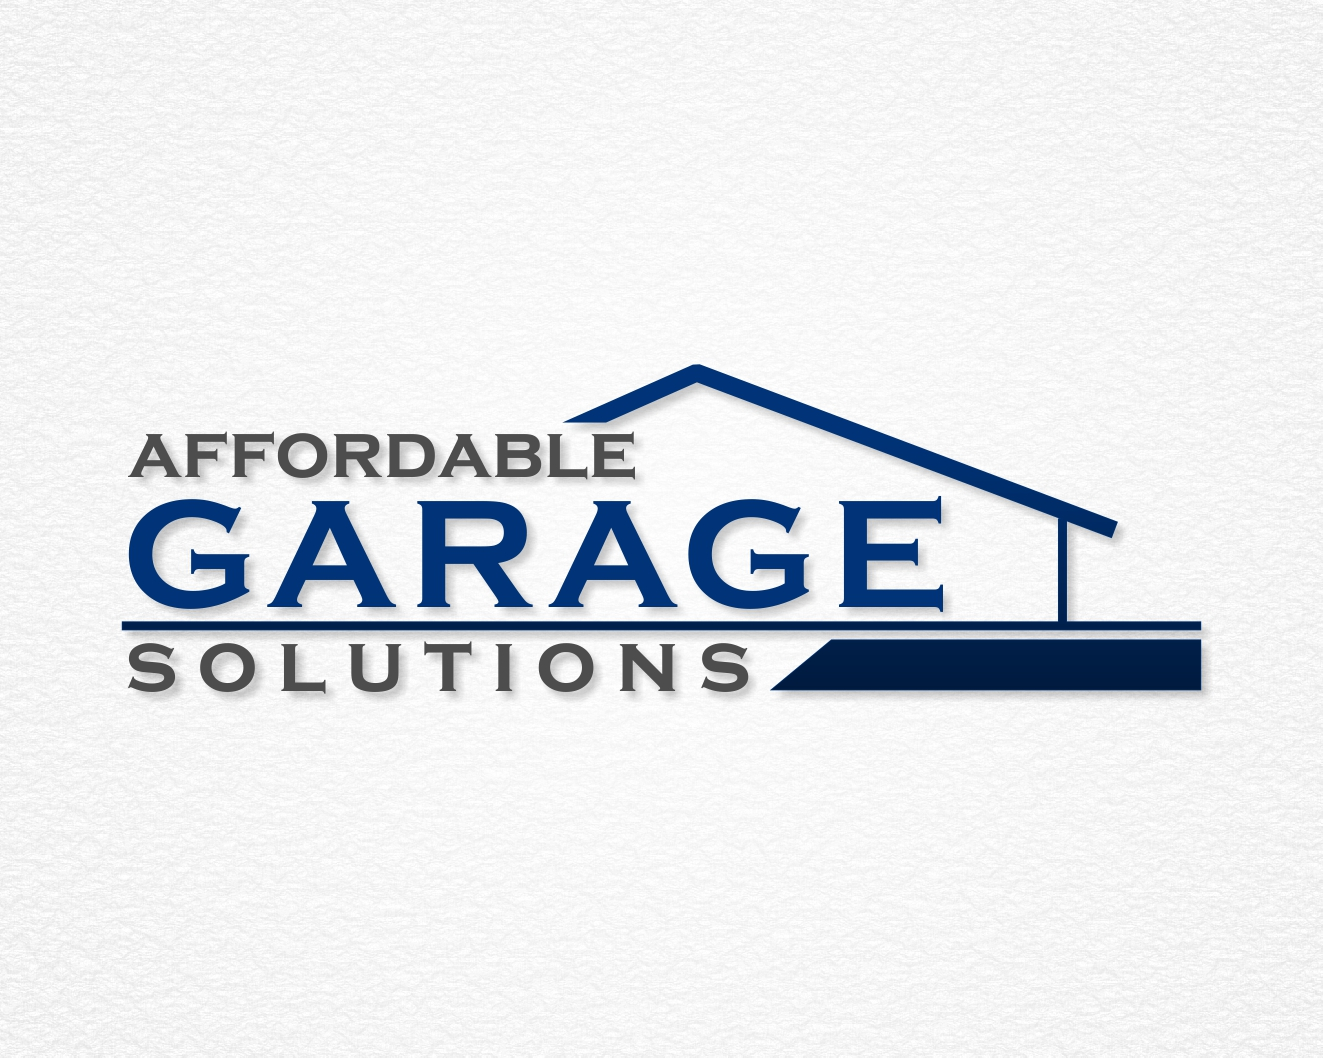 Logo Design by Rares.Andrei - Entry No. 15 in the Logo Design Contest Captivating Logo Design for affordable garage solutions.